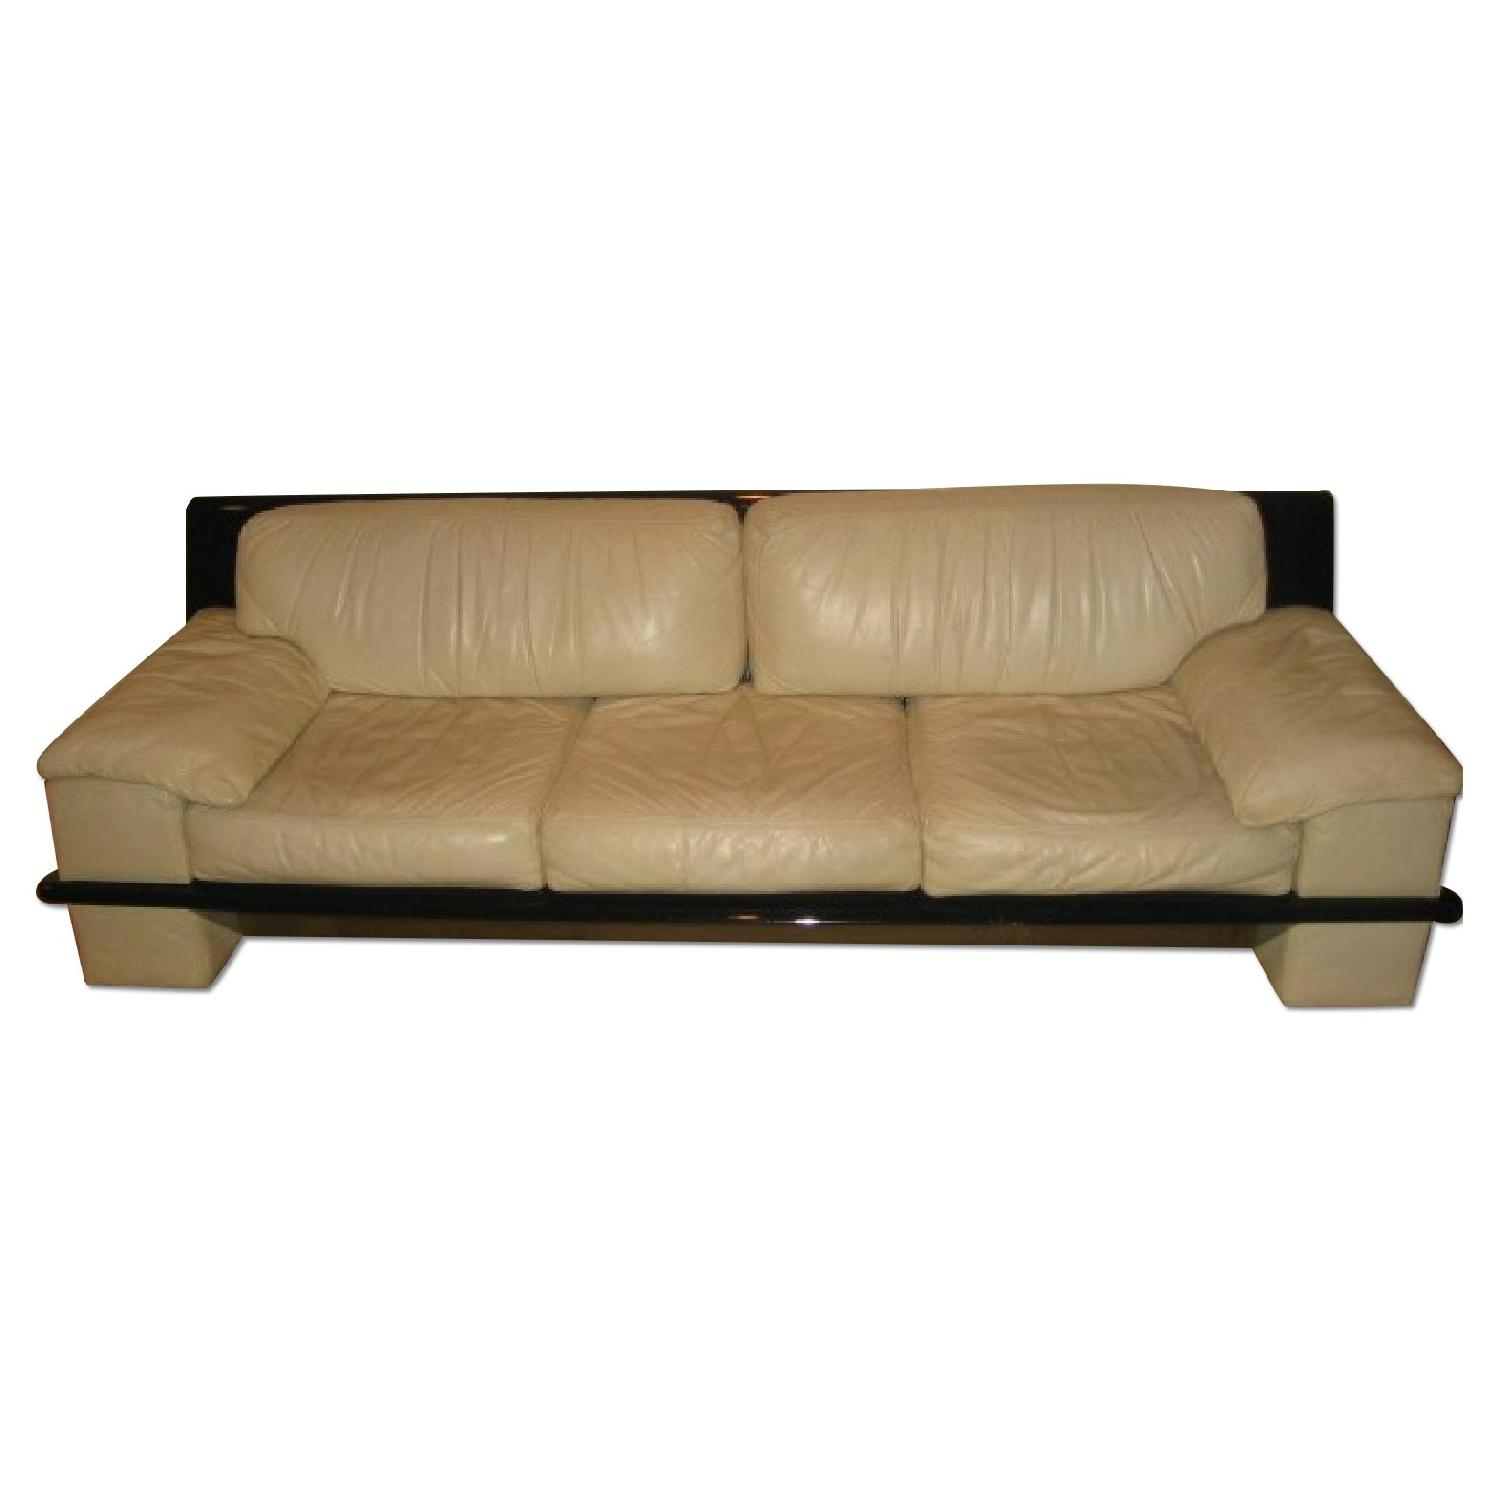 Ivory White Leather w/ bBack Lacker Solid Wood Trim Sofa + L